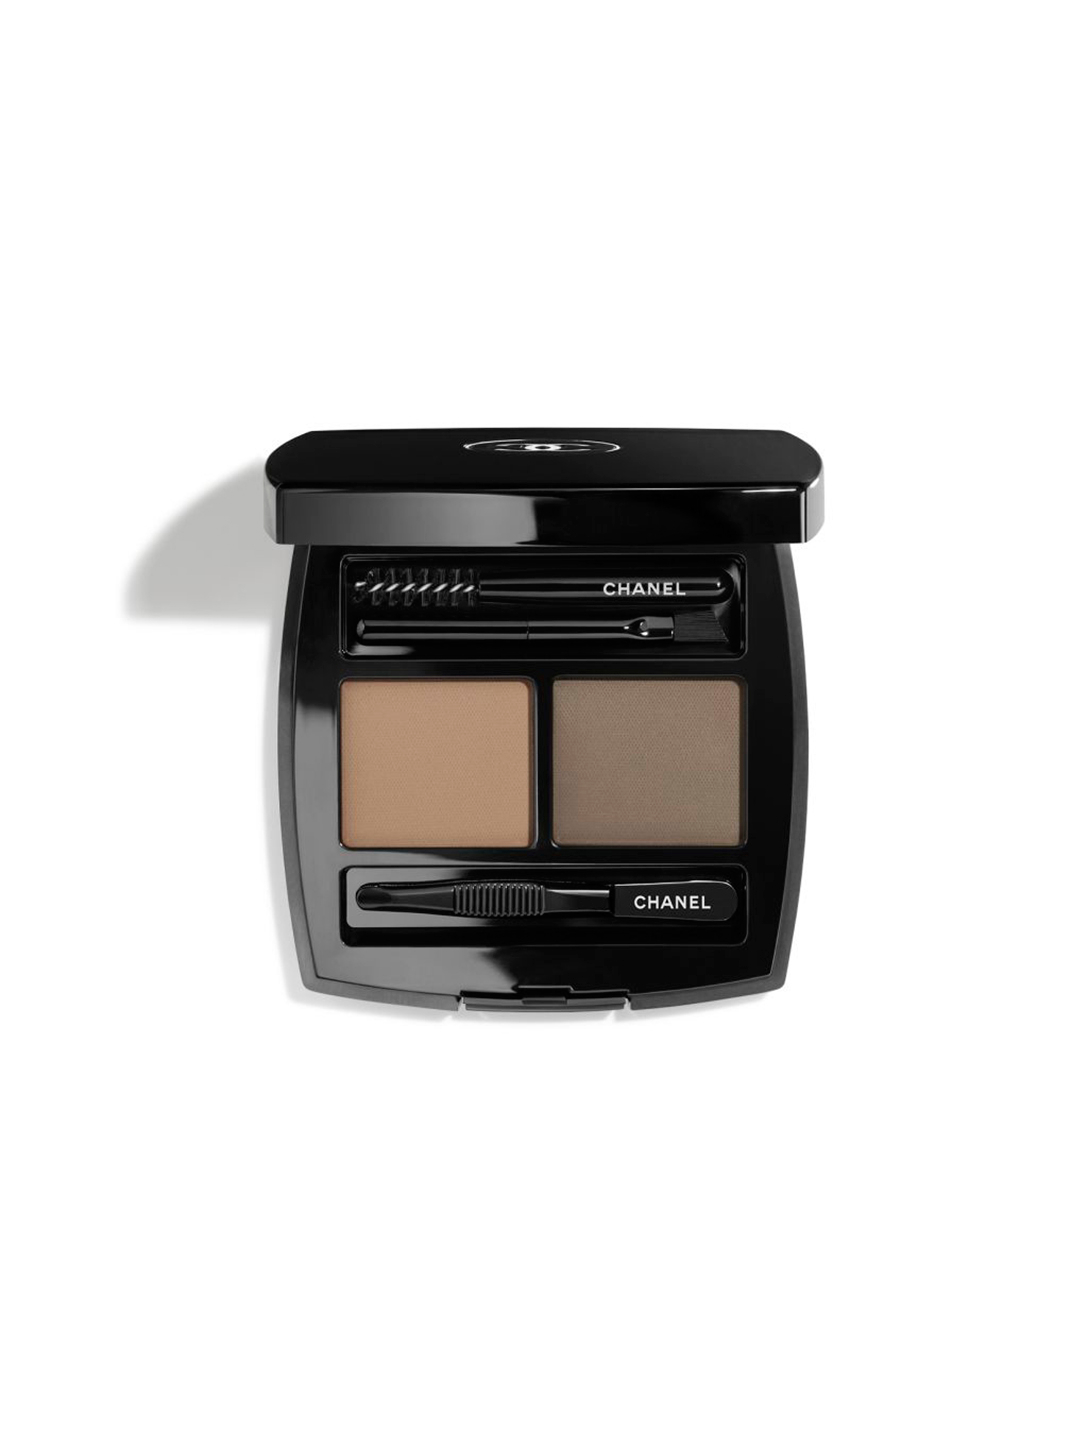 CHANEL Brow Powder Duo CHANEL Brown